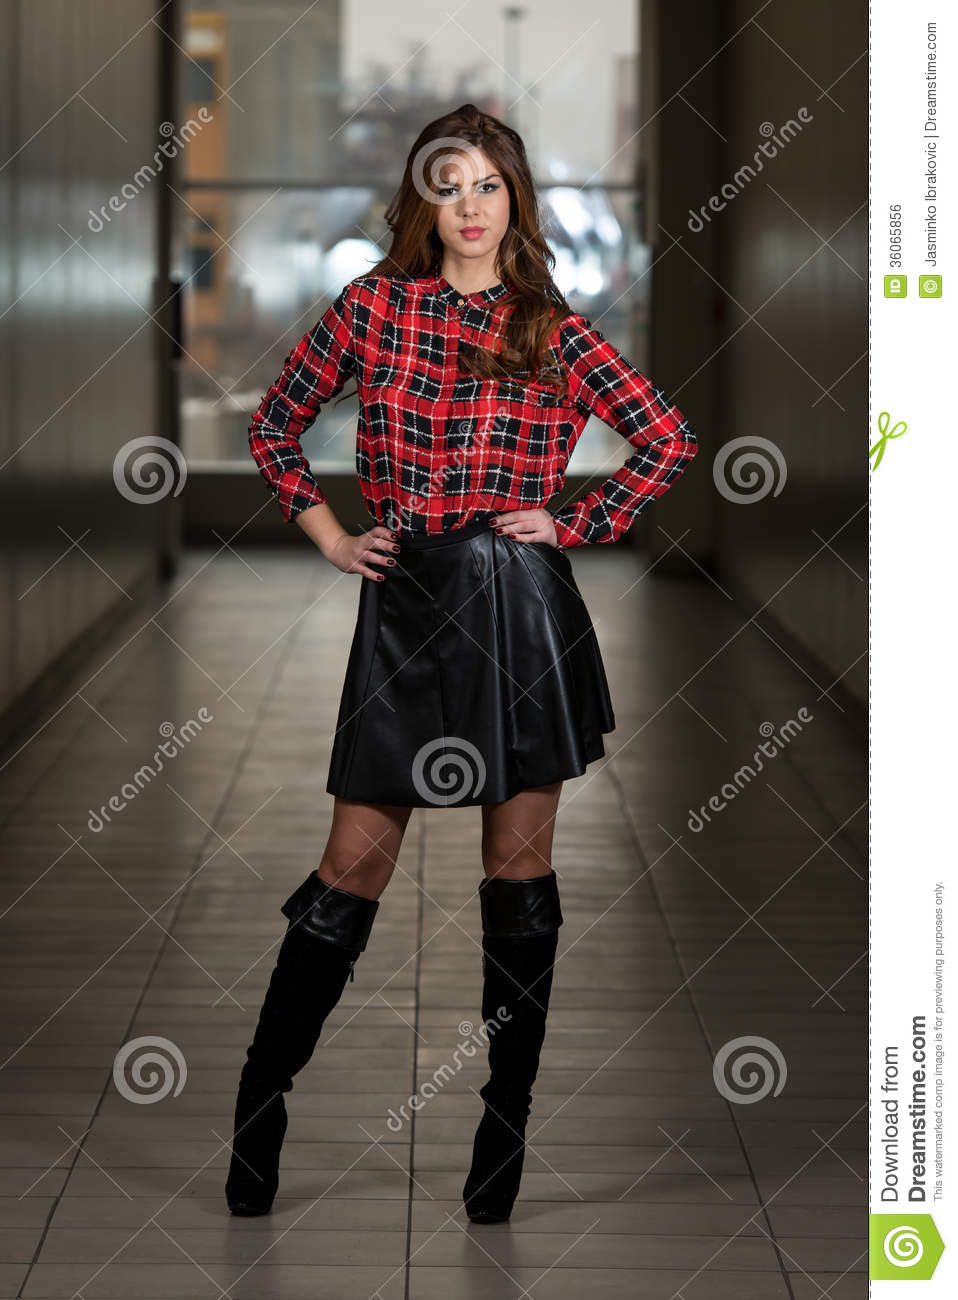 Beautiful Woman Wearing Black Leather Skirt Royalty Free Stock ...